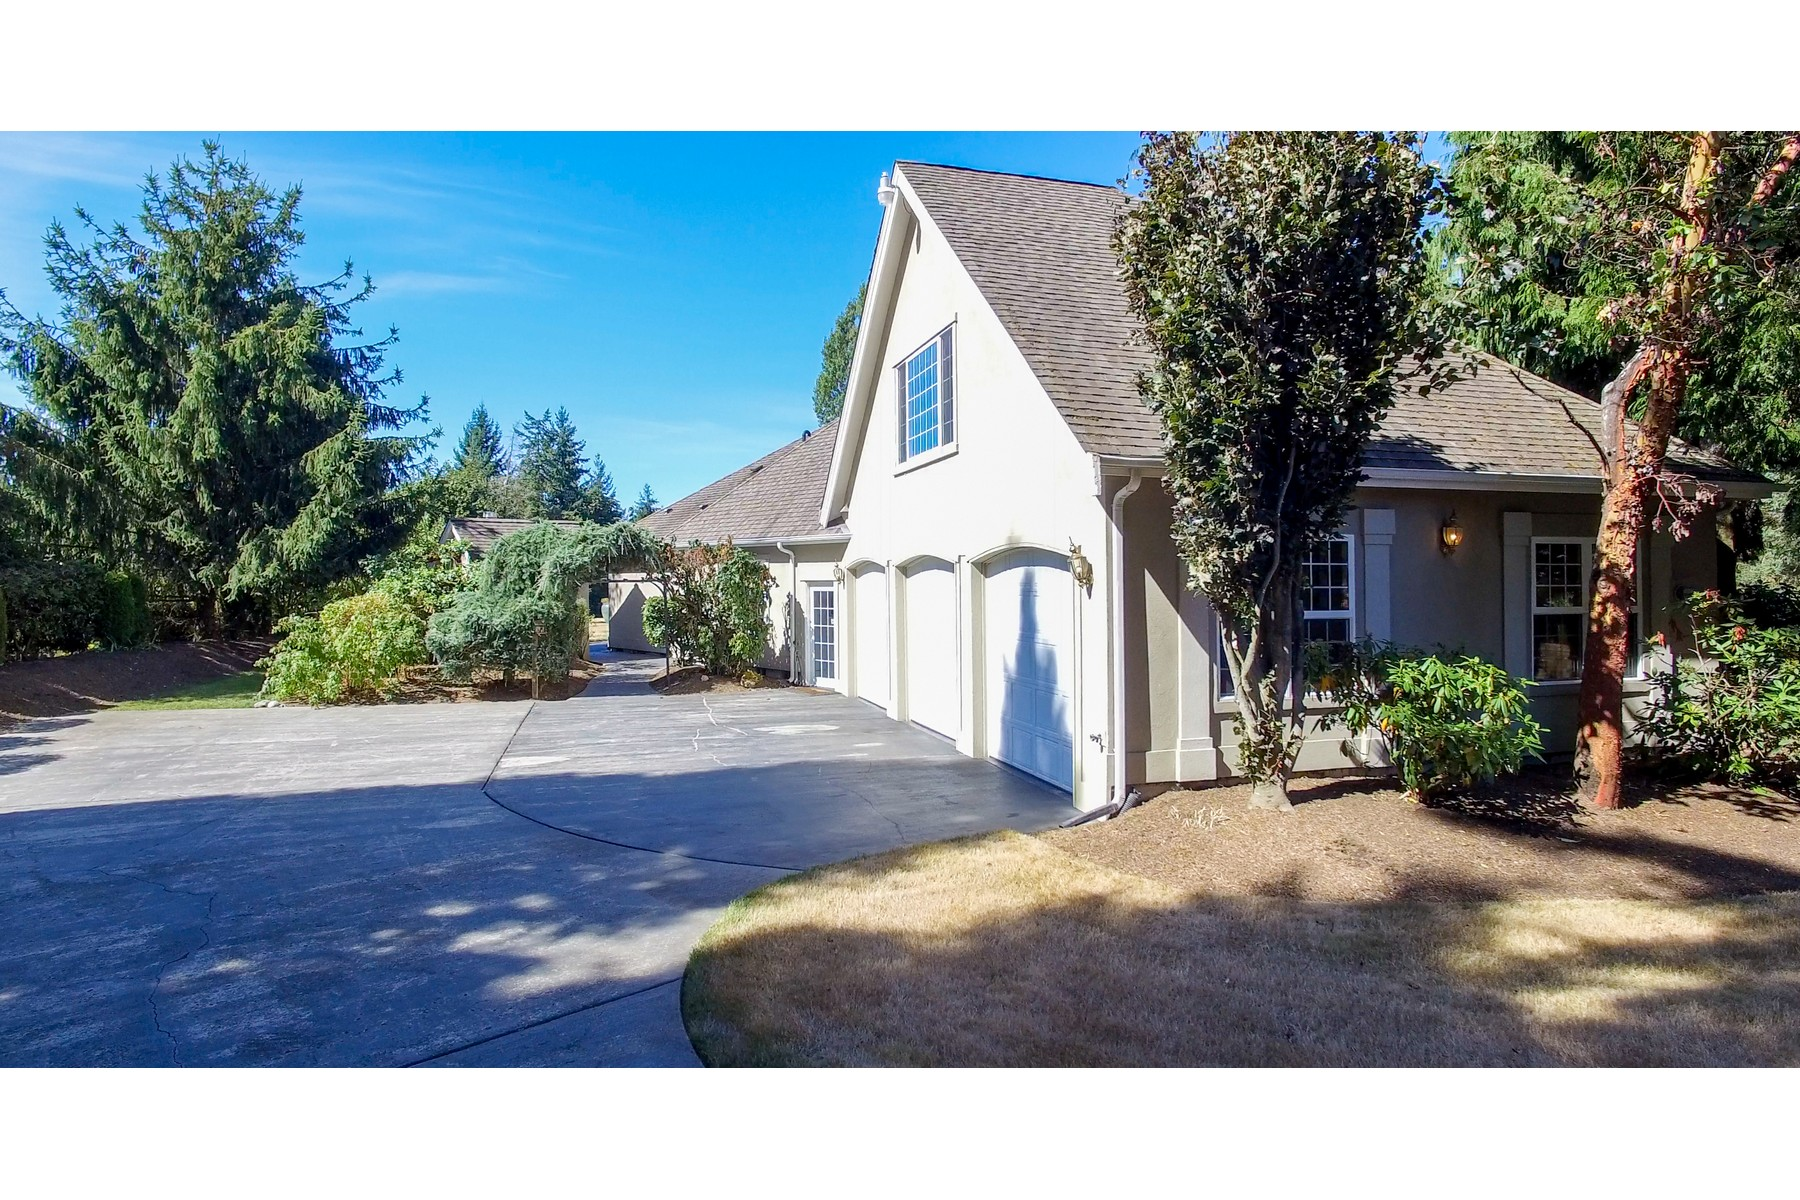 Additional photo for property listing at 23110 75th Ave, Woodinville 23110 75th Ave SE Woodinville, Washington 98072 États-Unis